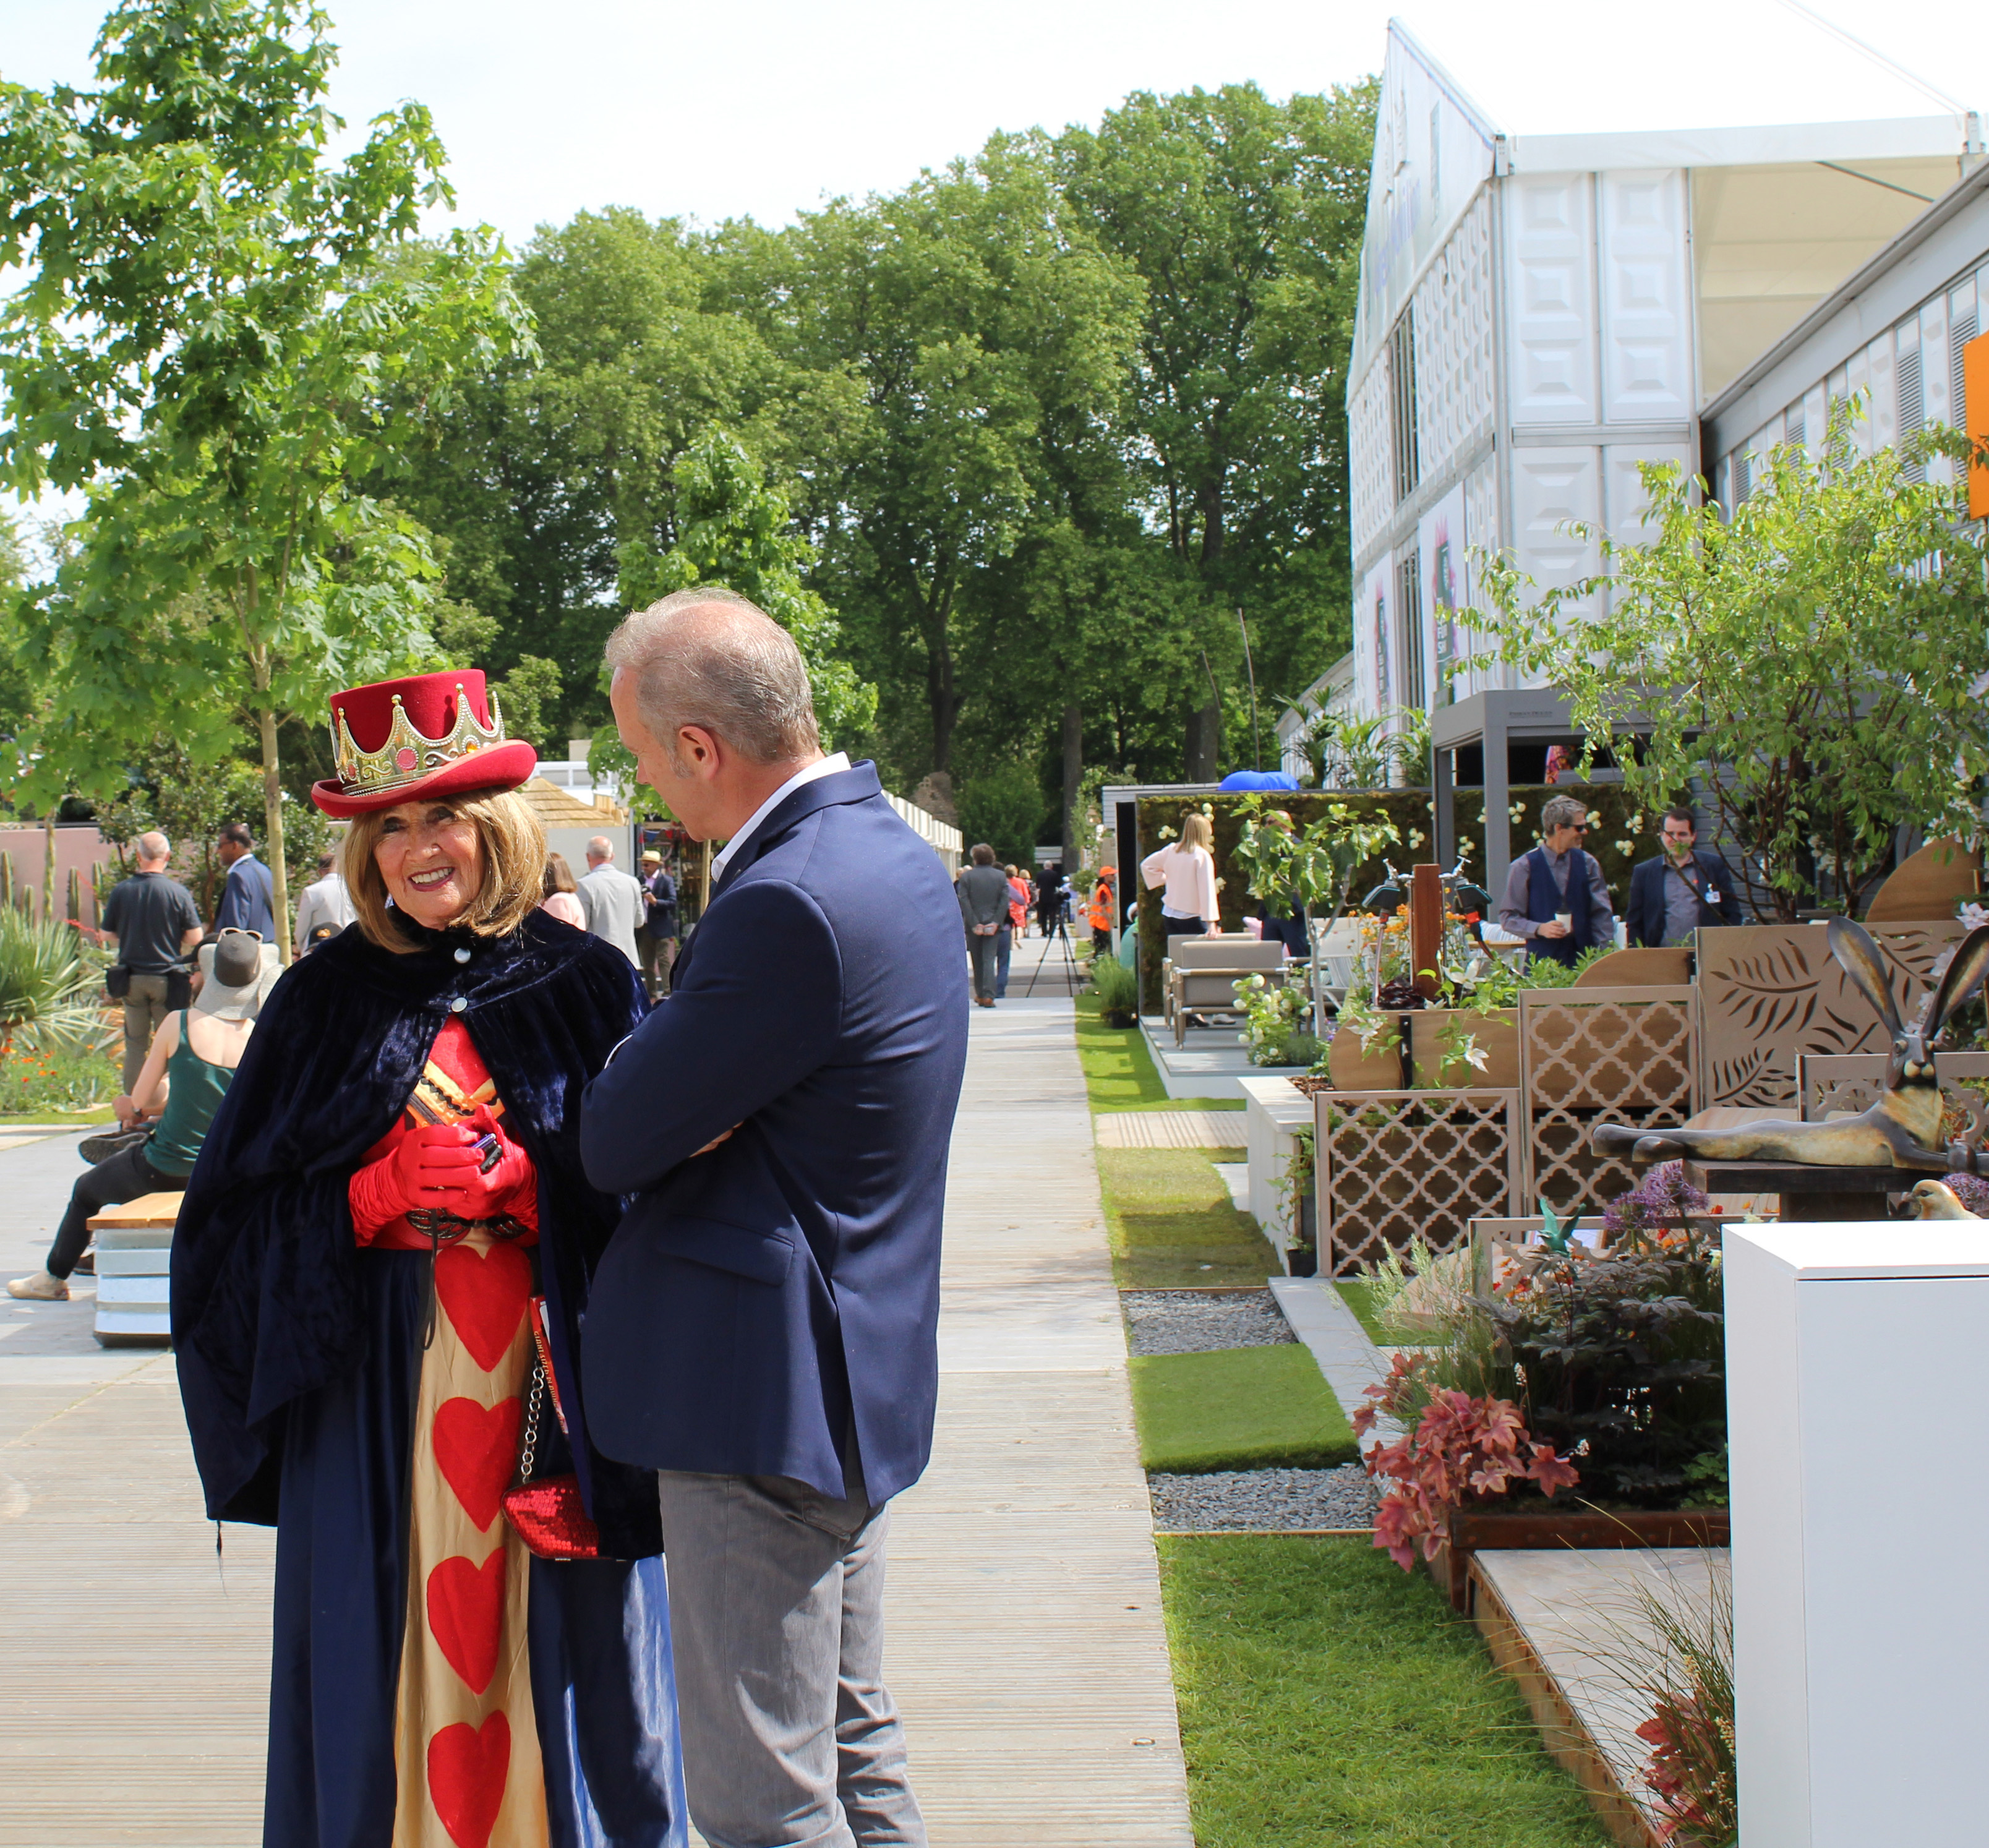 Queen of Hearts at Chelsea Flower Show